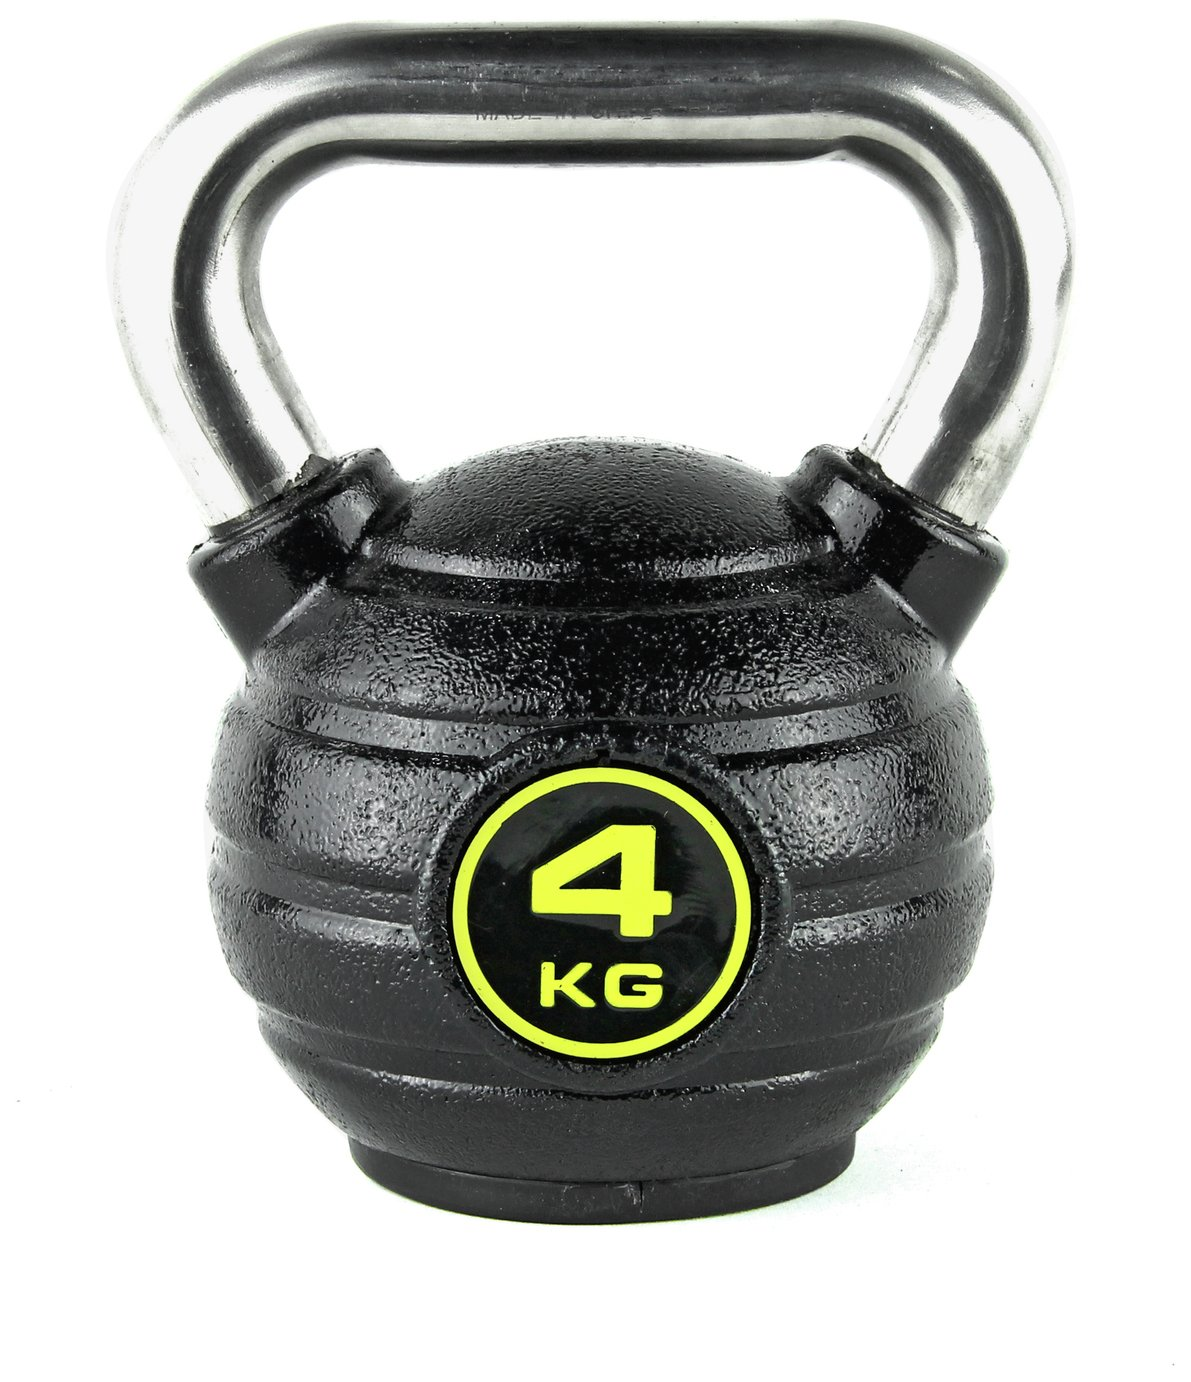 Opti Eco-Iron and Stainless Steel Kettlebell - 4kg